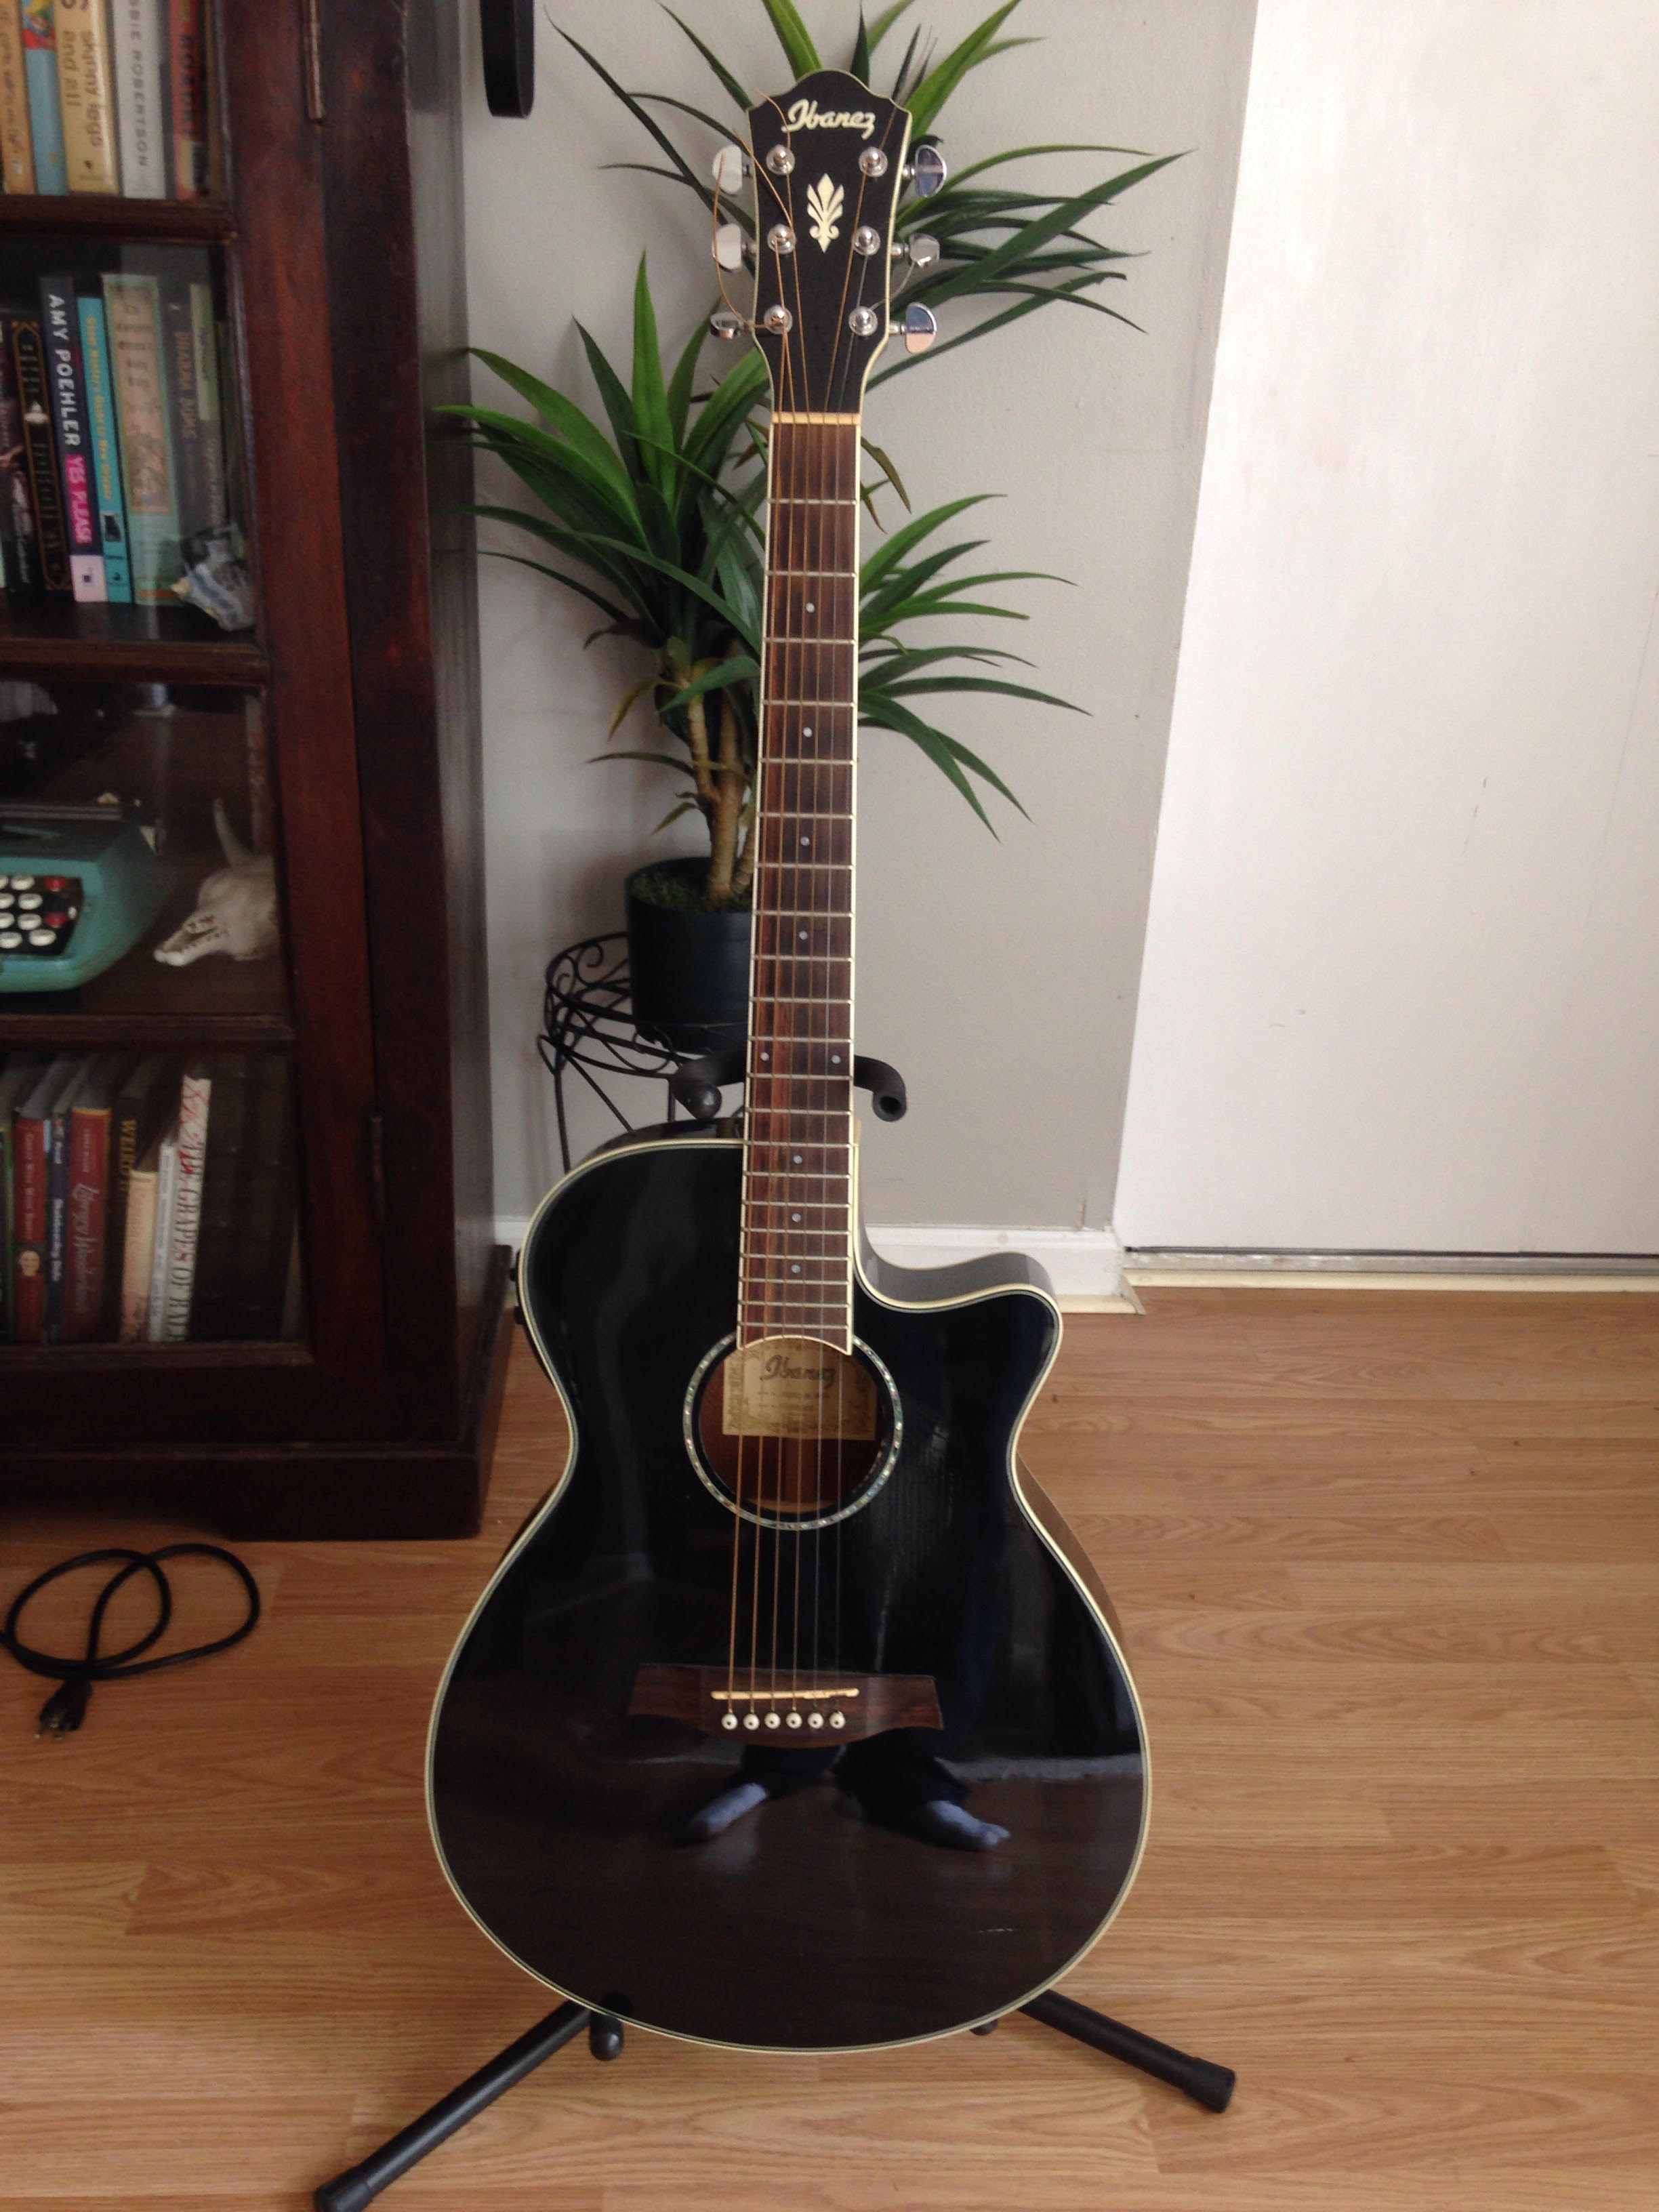 Ibanez AEG10II Acoustic Electric Guitar For Sale